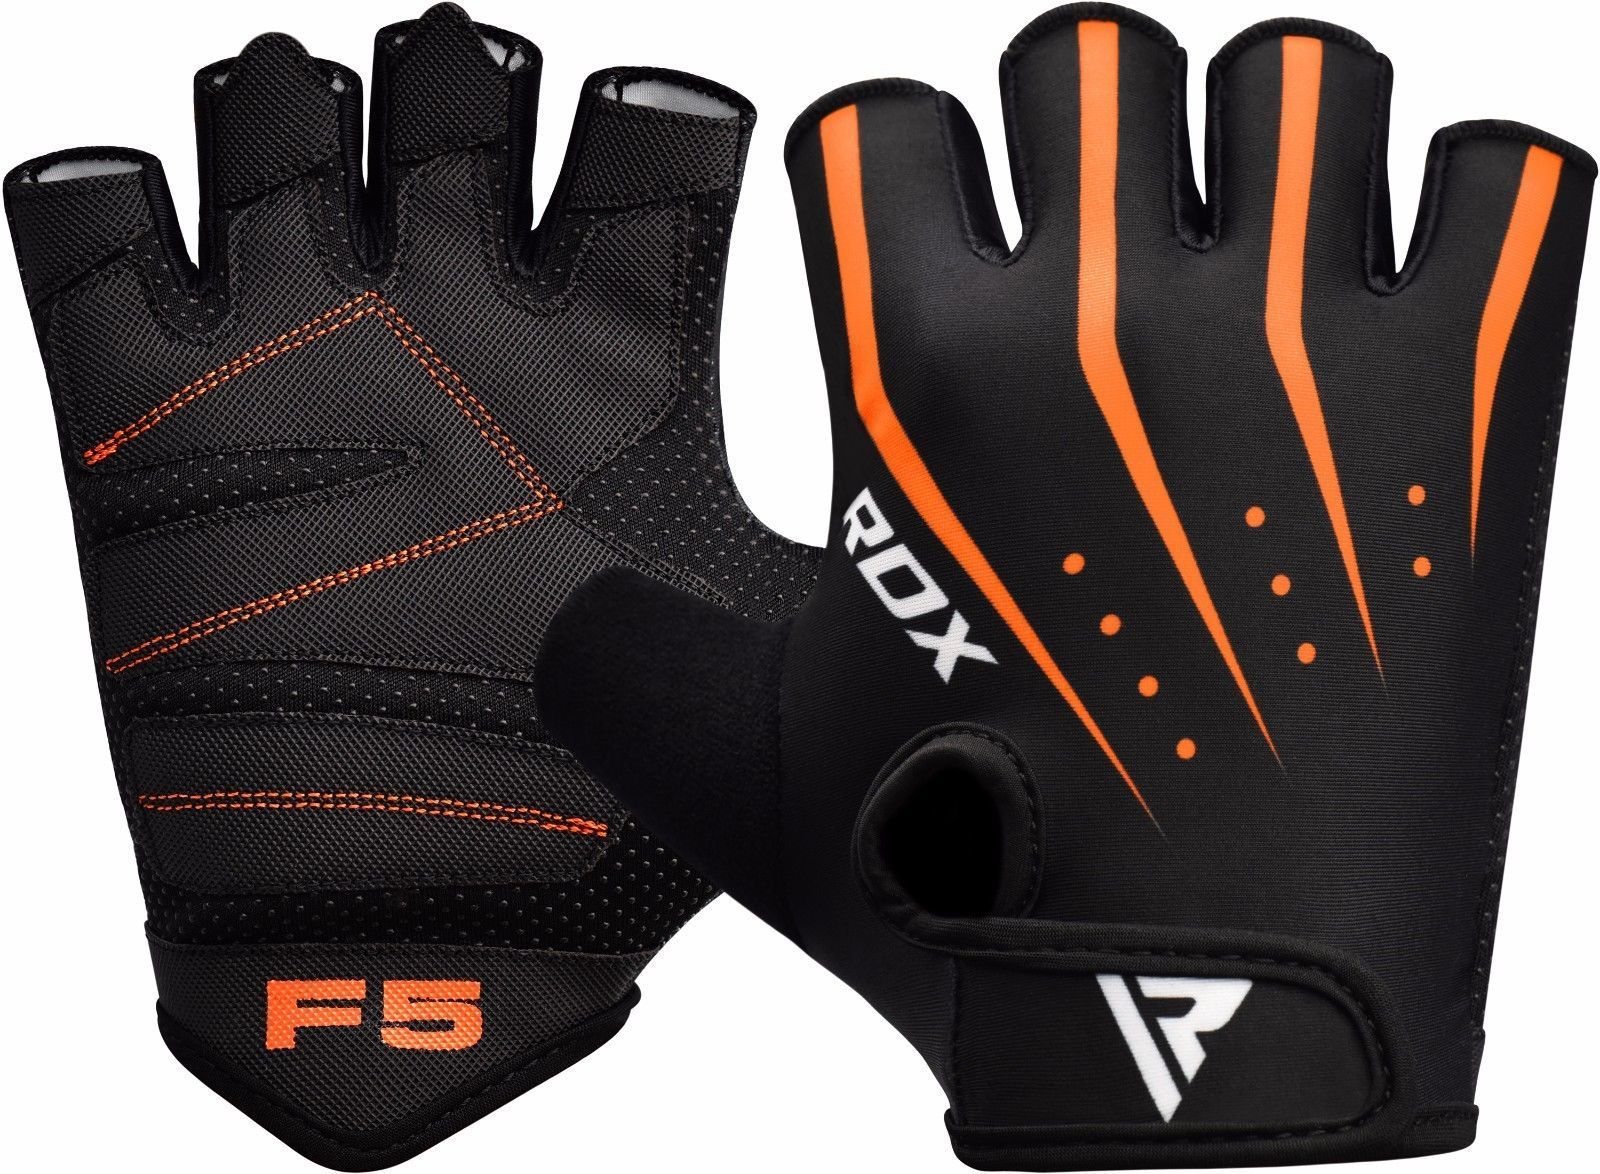 RDX WEIGHT LIFTING GYM GLOVES 0